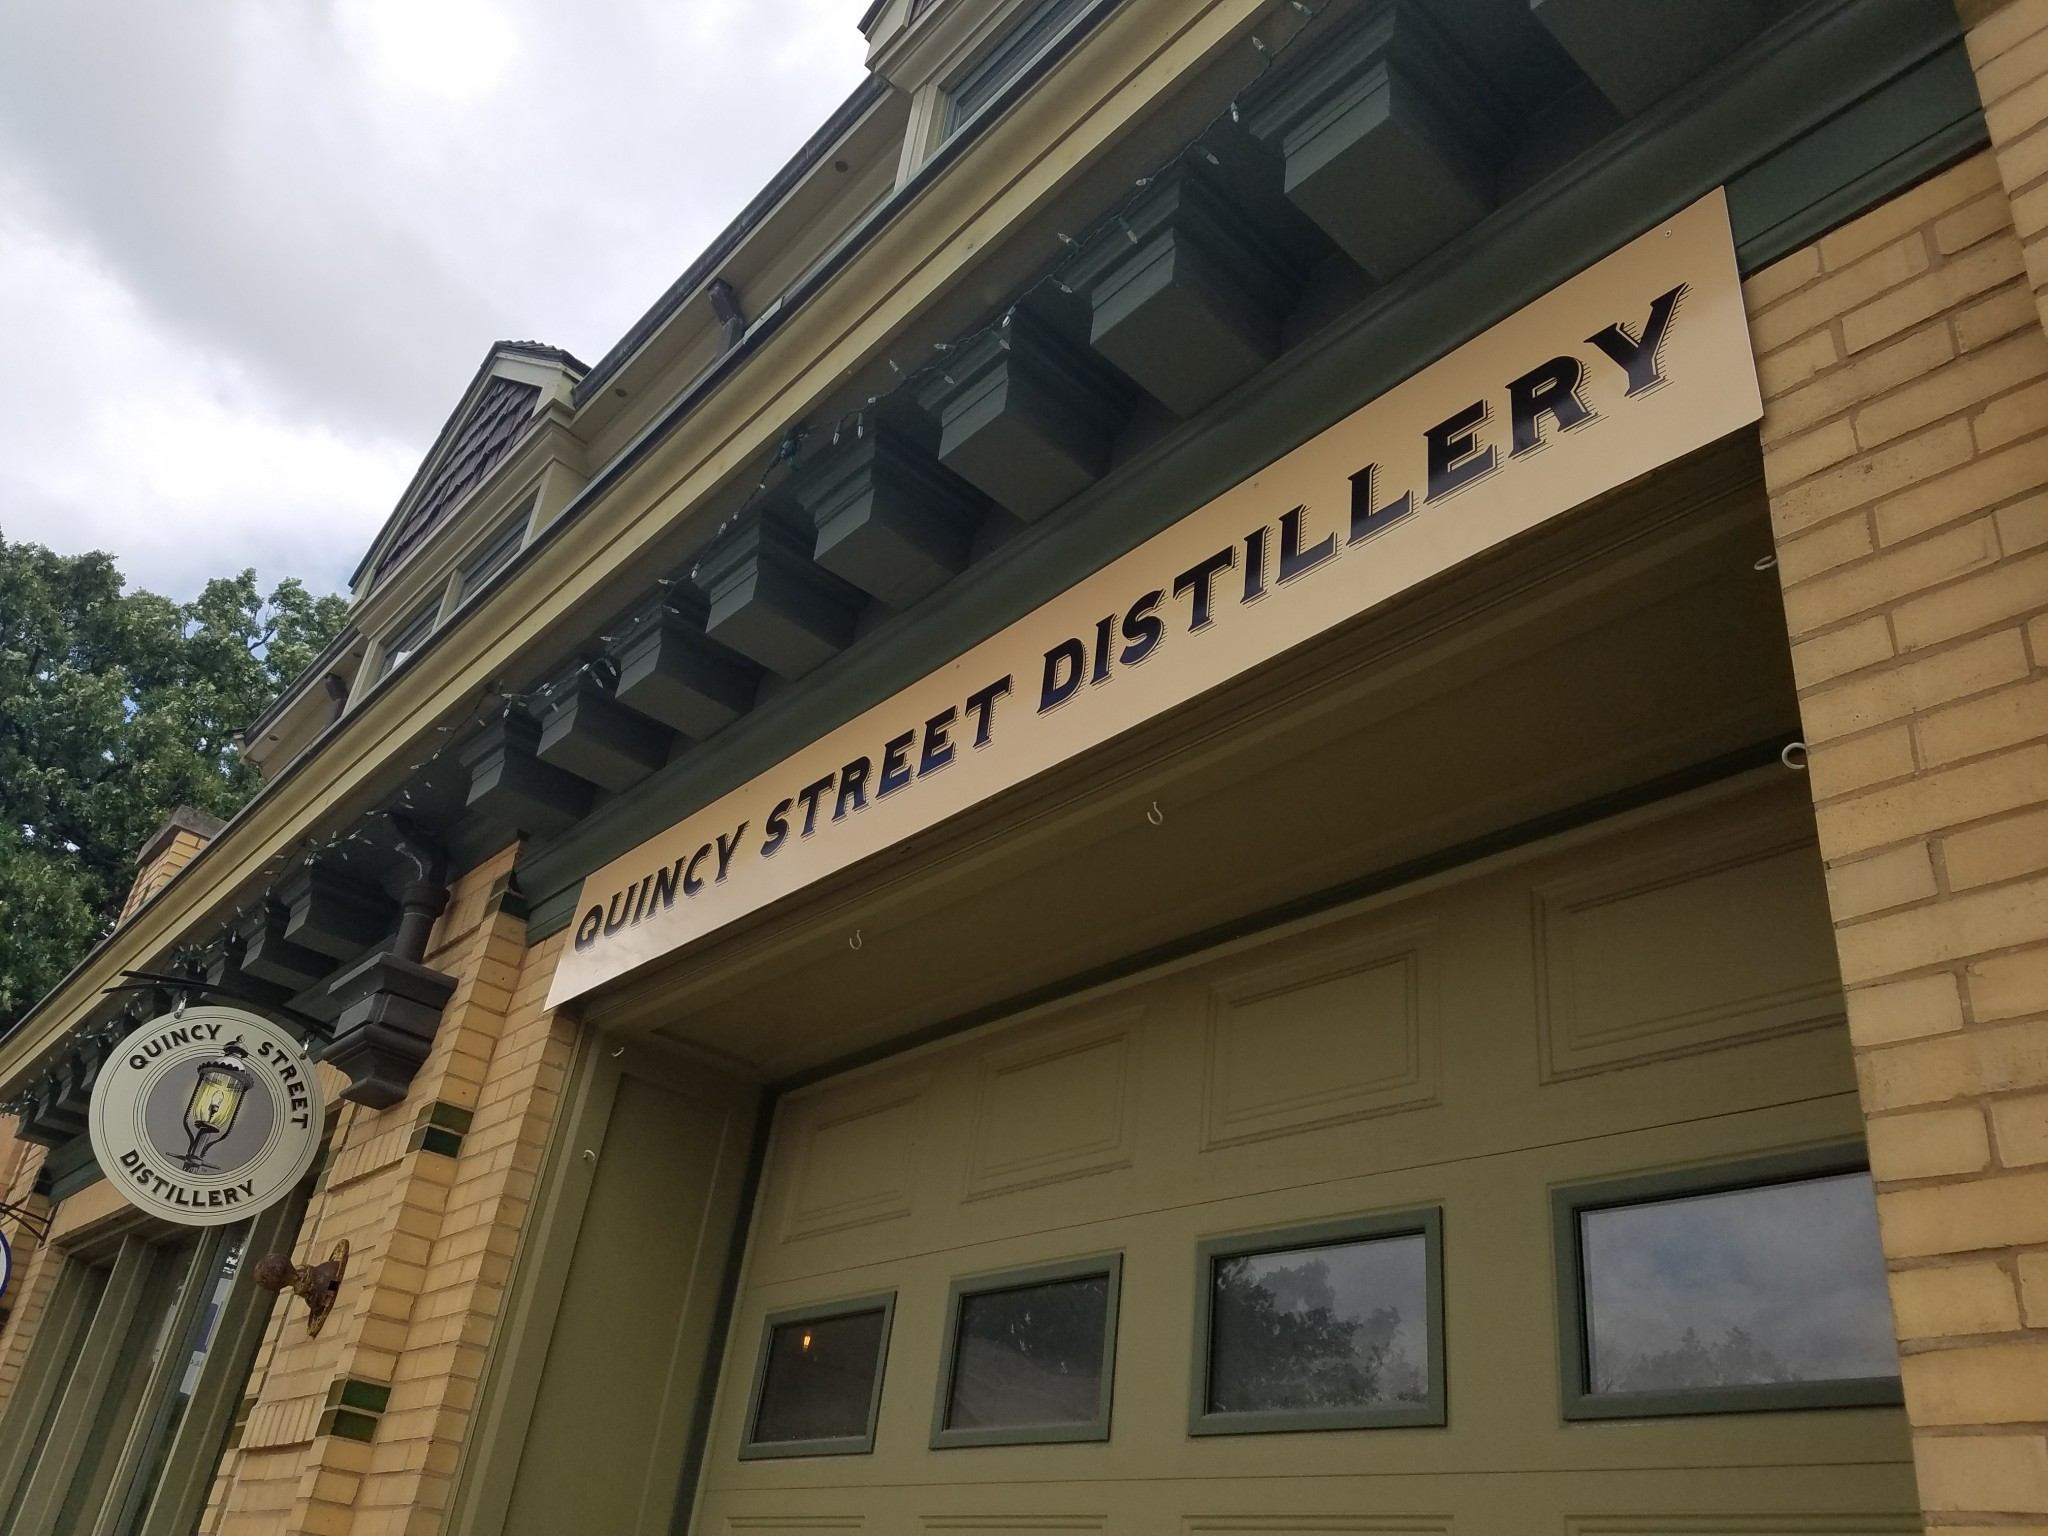 Quincy Street Distillery: History Meets Science